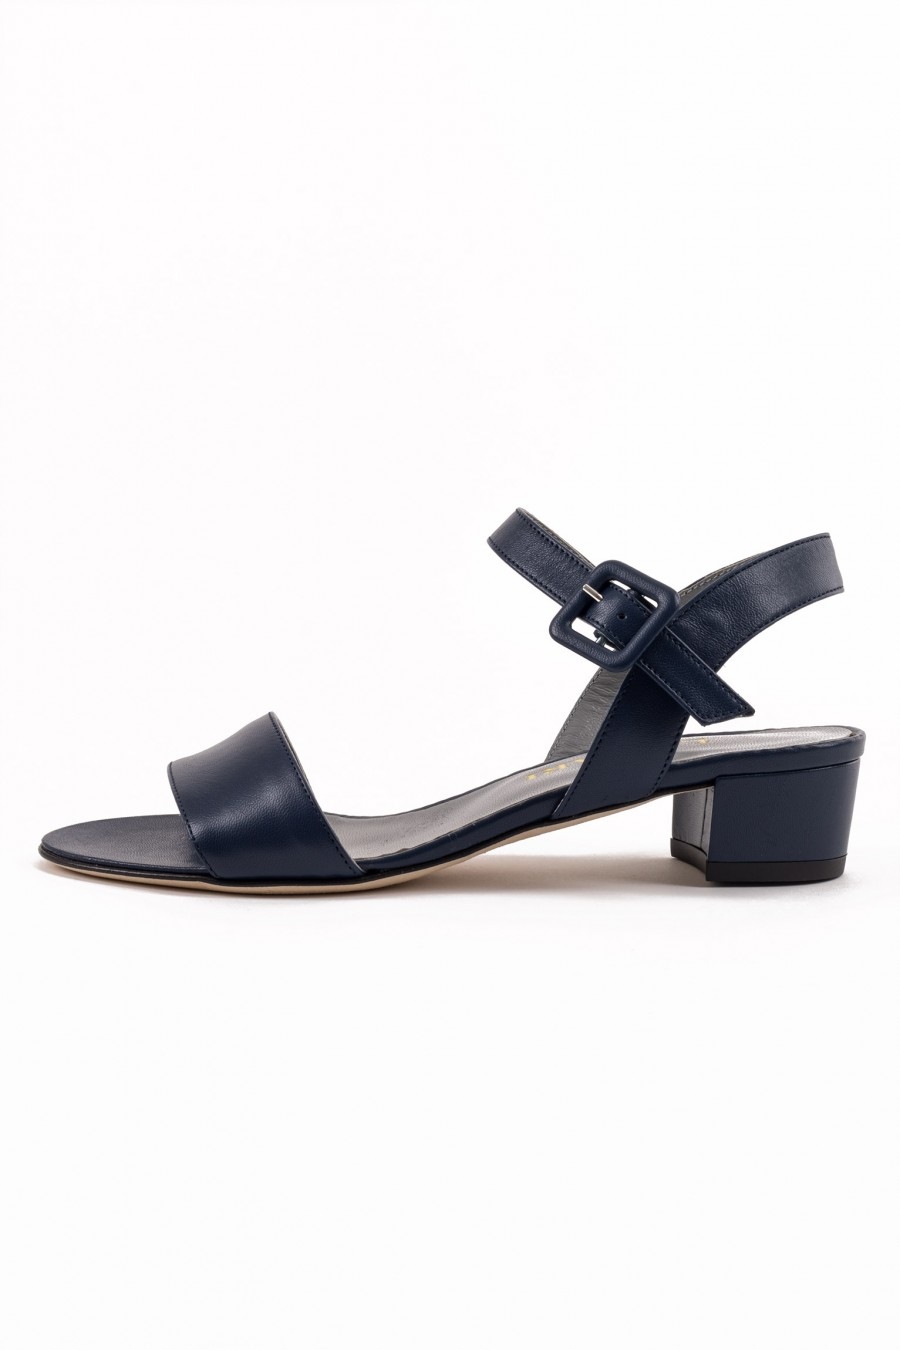 Blue sandal with covered buckle